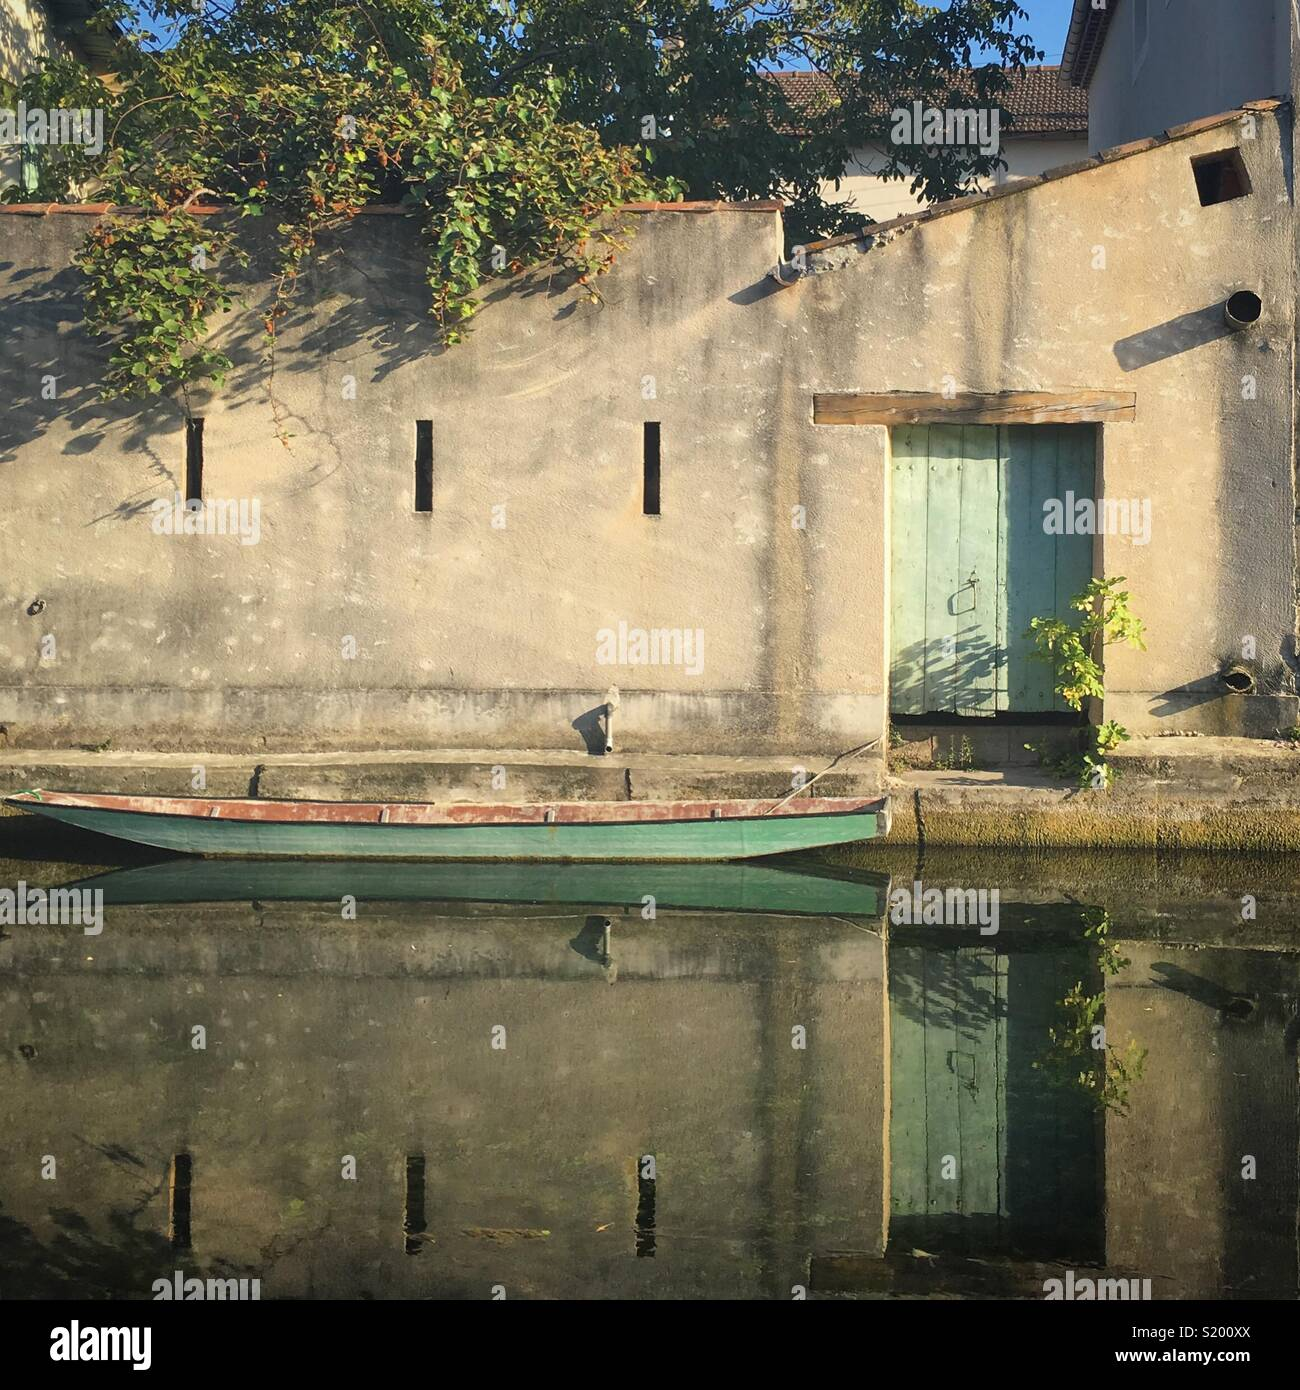 A boat on the calm water in L'Isle Sur La Sorgue, Provence, France - Stock Image